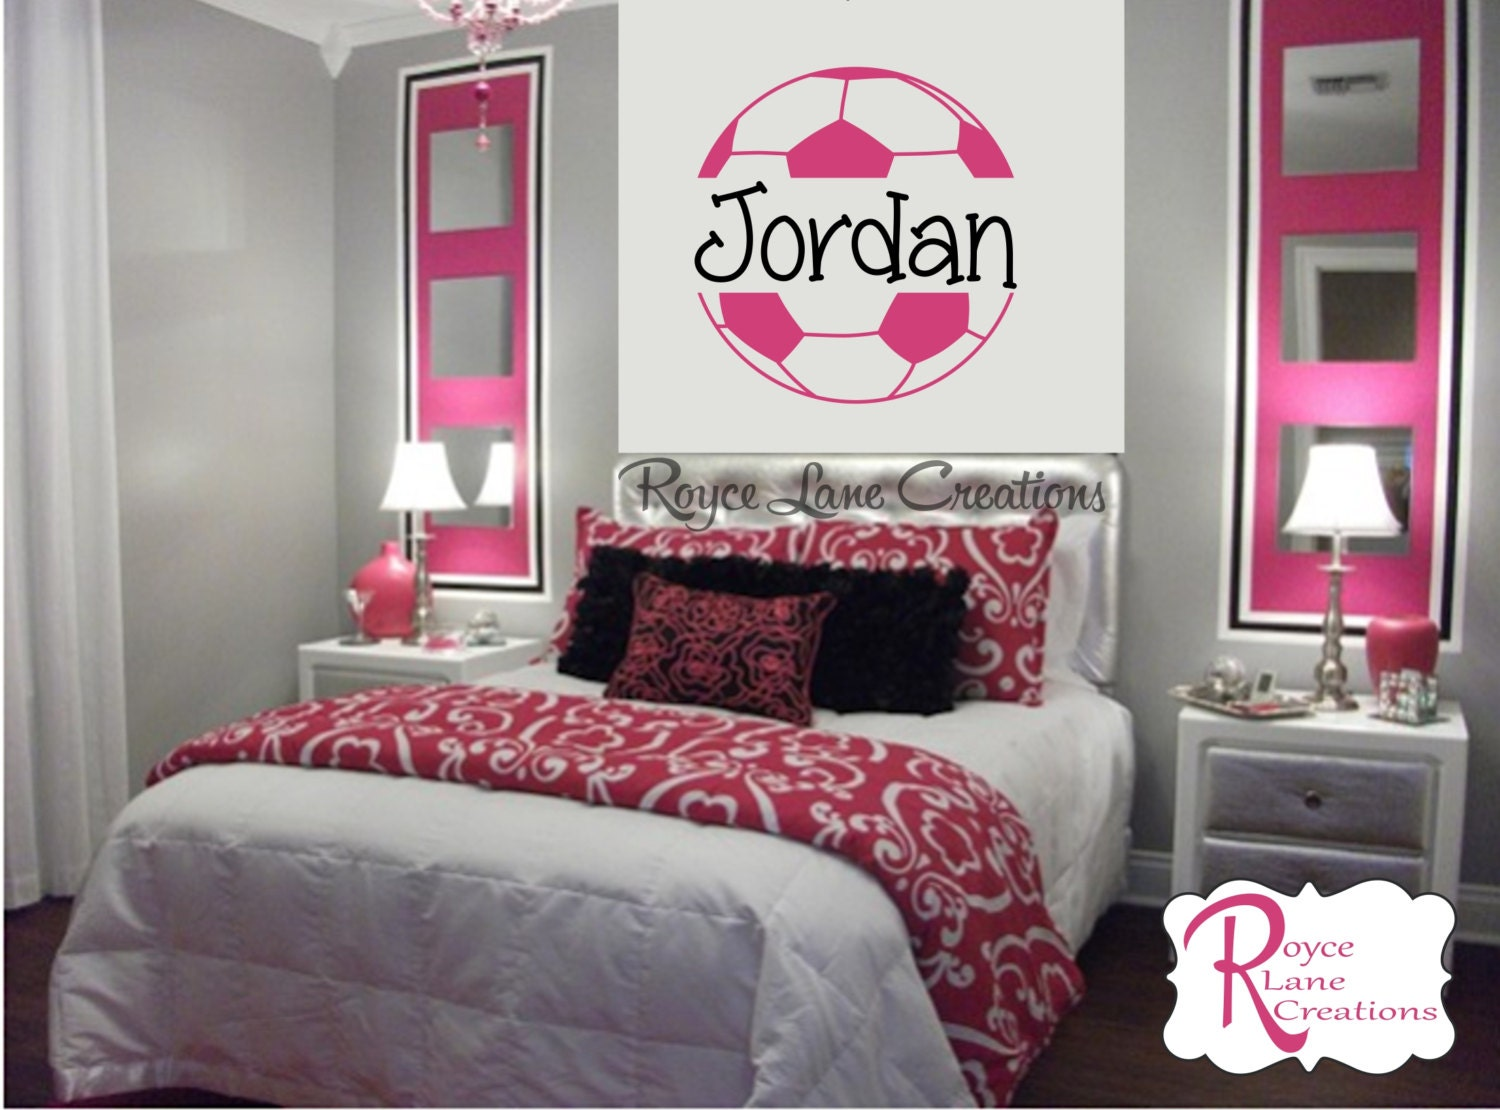 soccer ball soccer wall decal b4 for girls. Black Bedroom Furniture Sets. Home Design Ideas